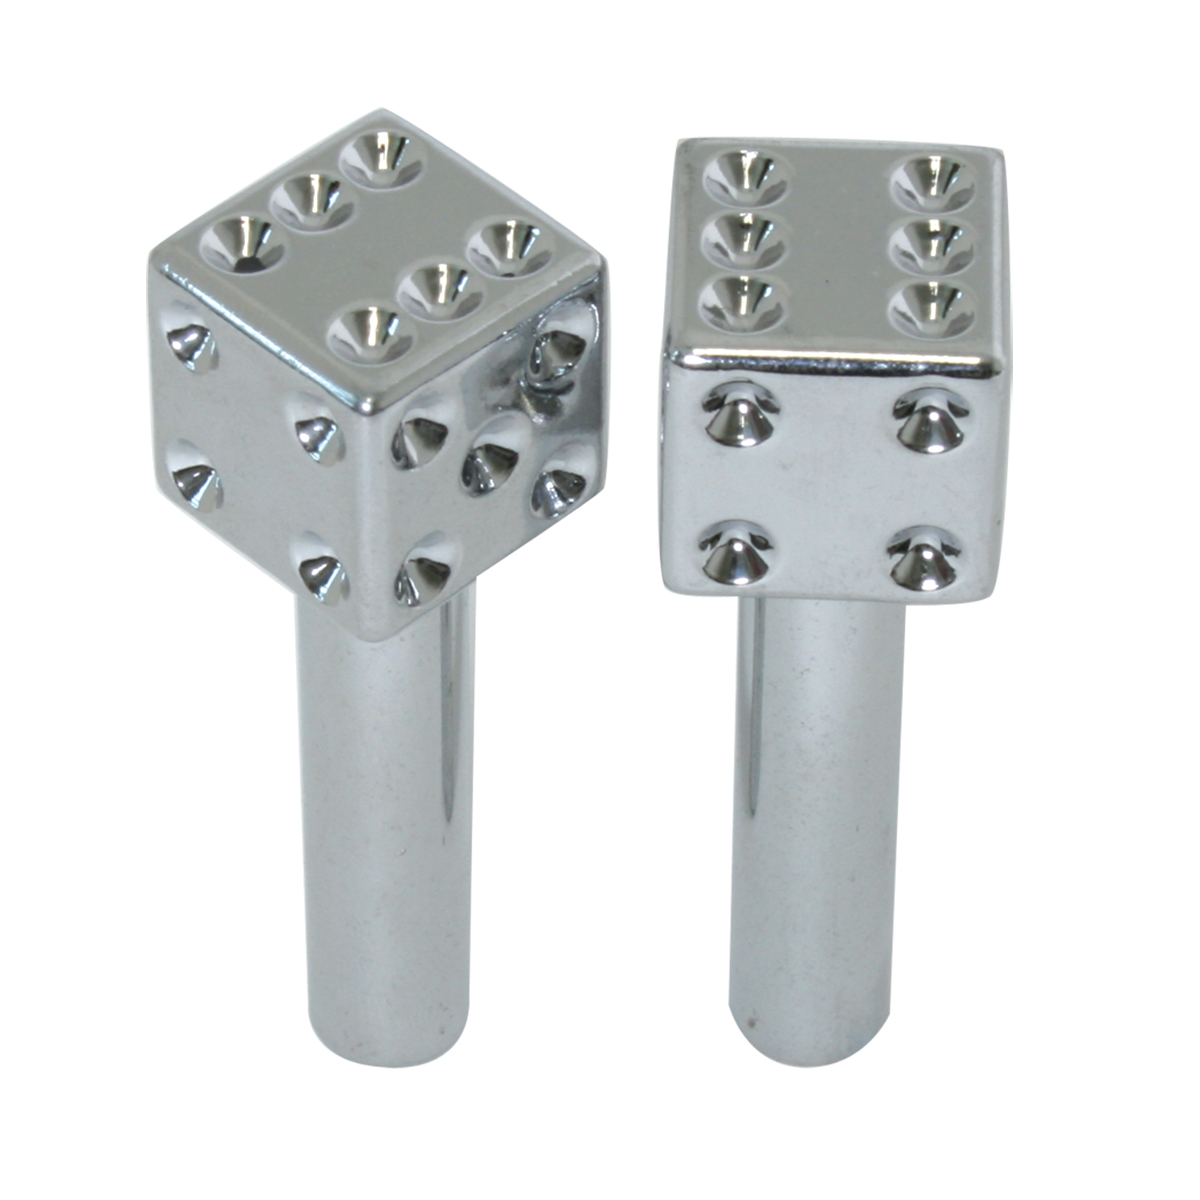 93310 Dice Door Lock Knobs